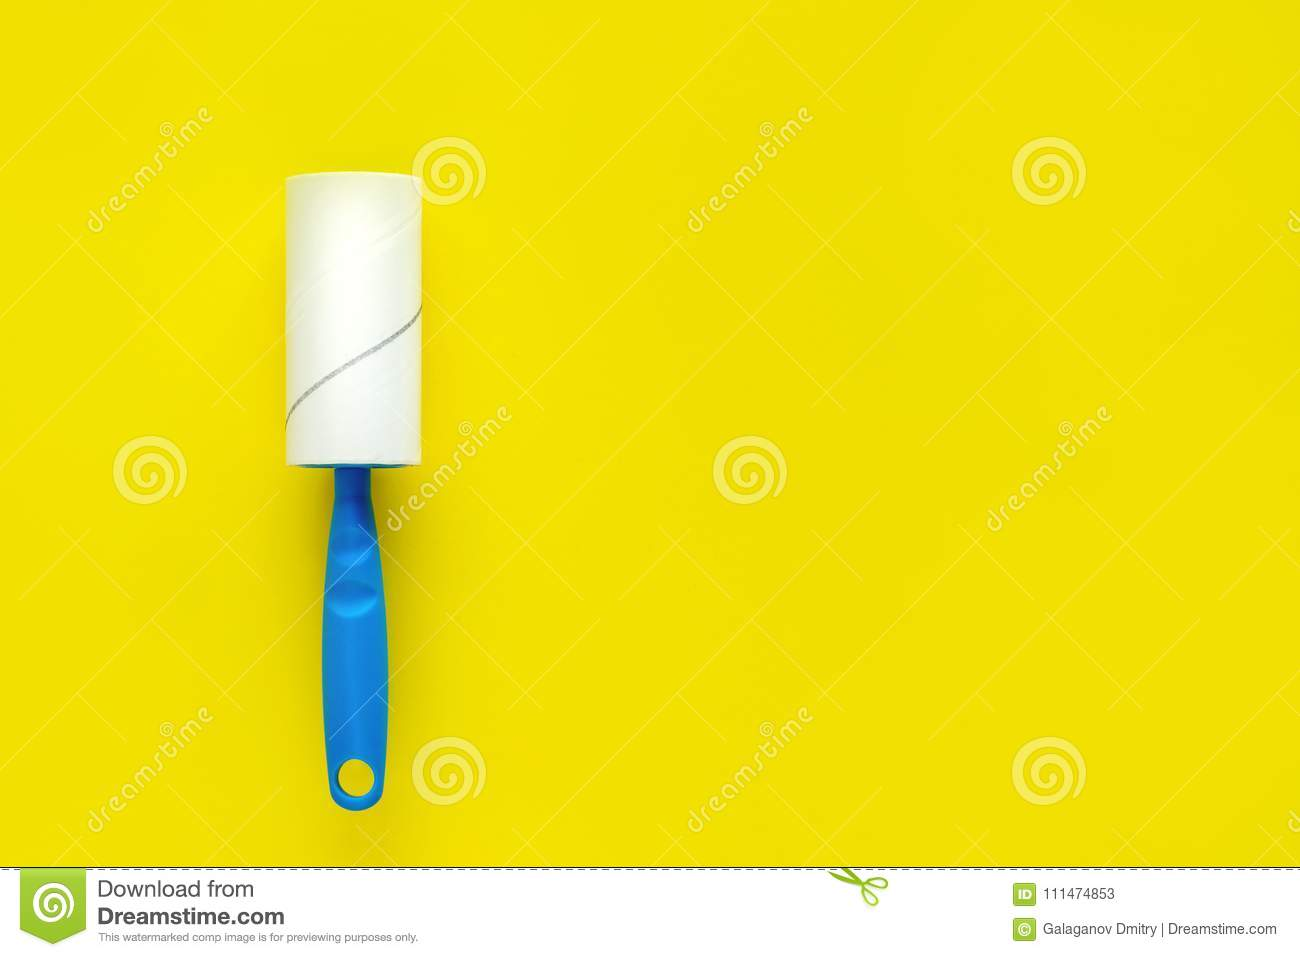 Roller Clothing Cleaner With Adhesive Tape And Blue Handle On A Yellow Background